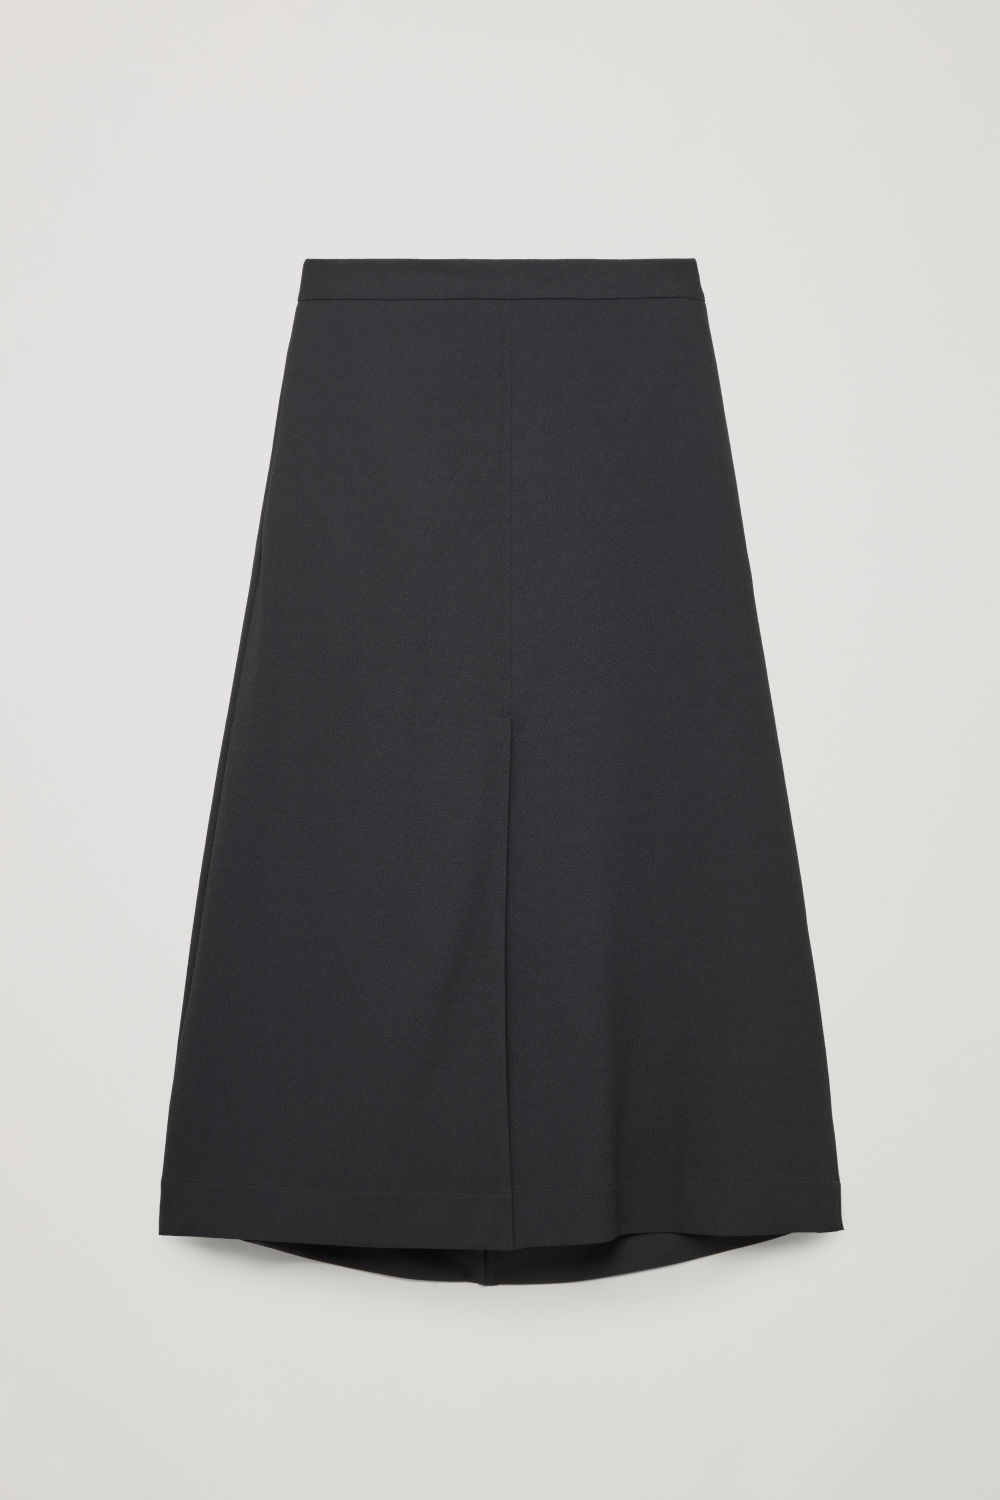 SLIT-DETAILED MID-LENGTH SKIRT